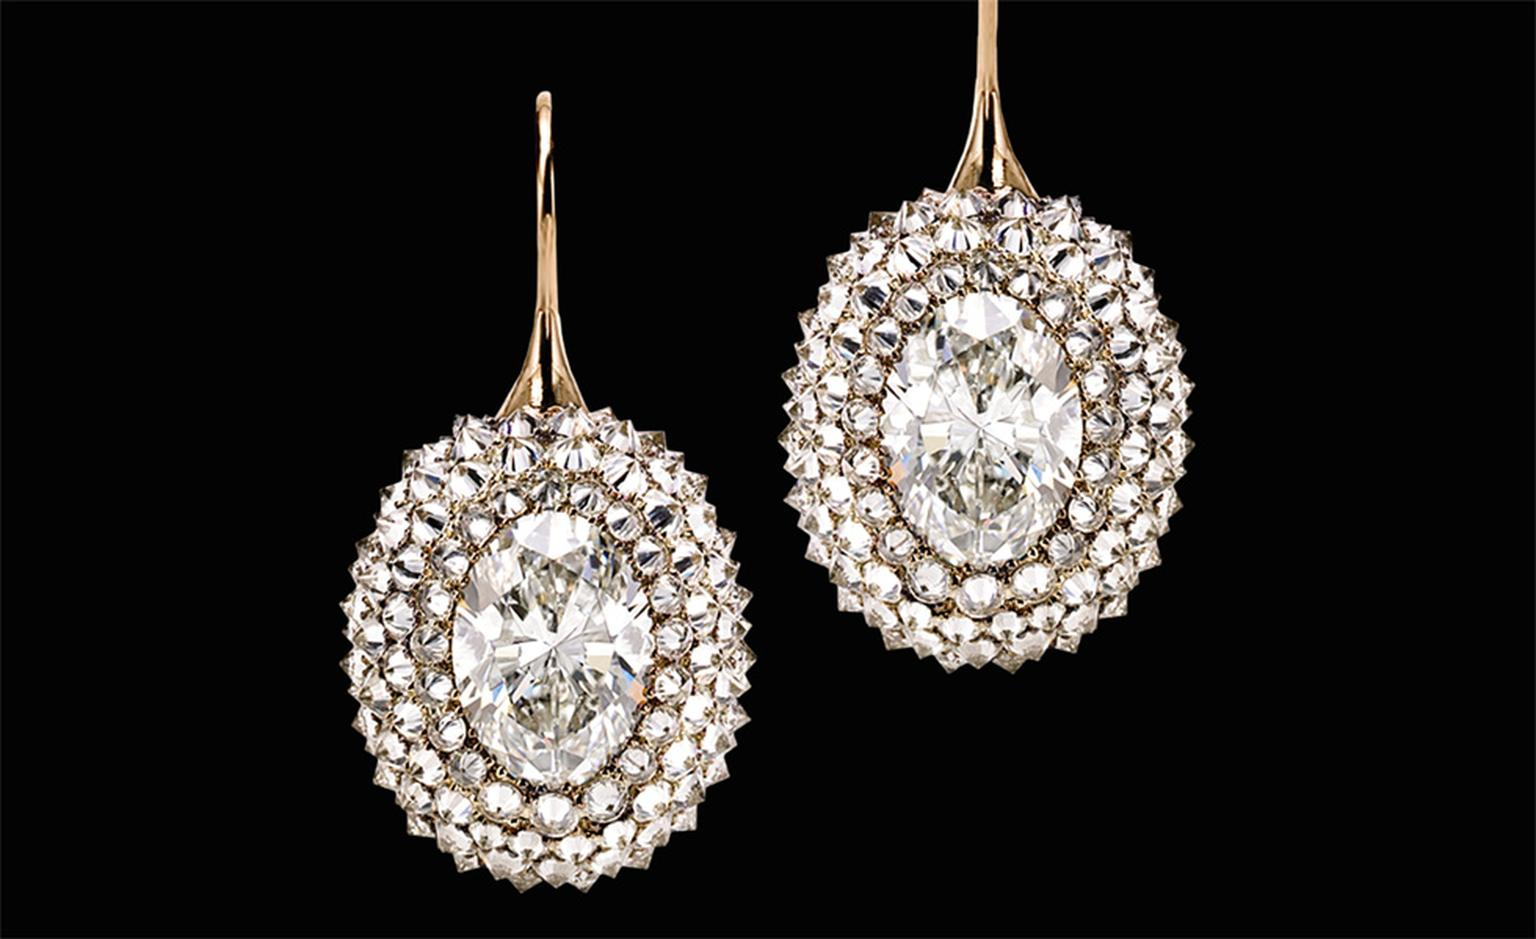 Sotheby's Diamonds Durian Fruit earrings. The smaller diamonds are set upside down so that the pointed ends are facing out. The effect is one of rich texture and intense fire.